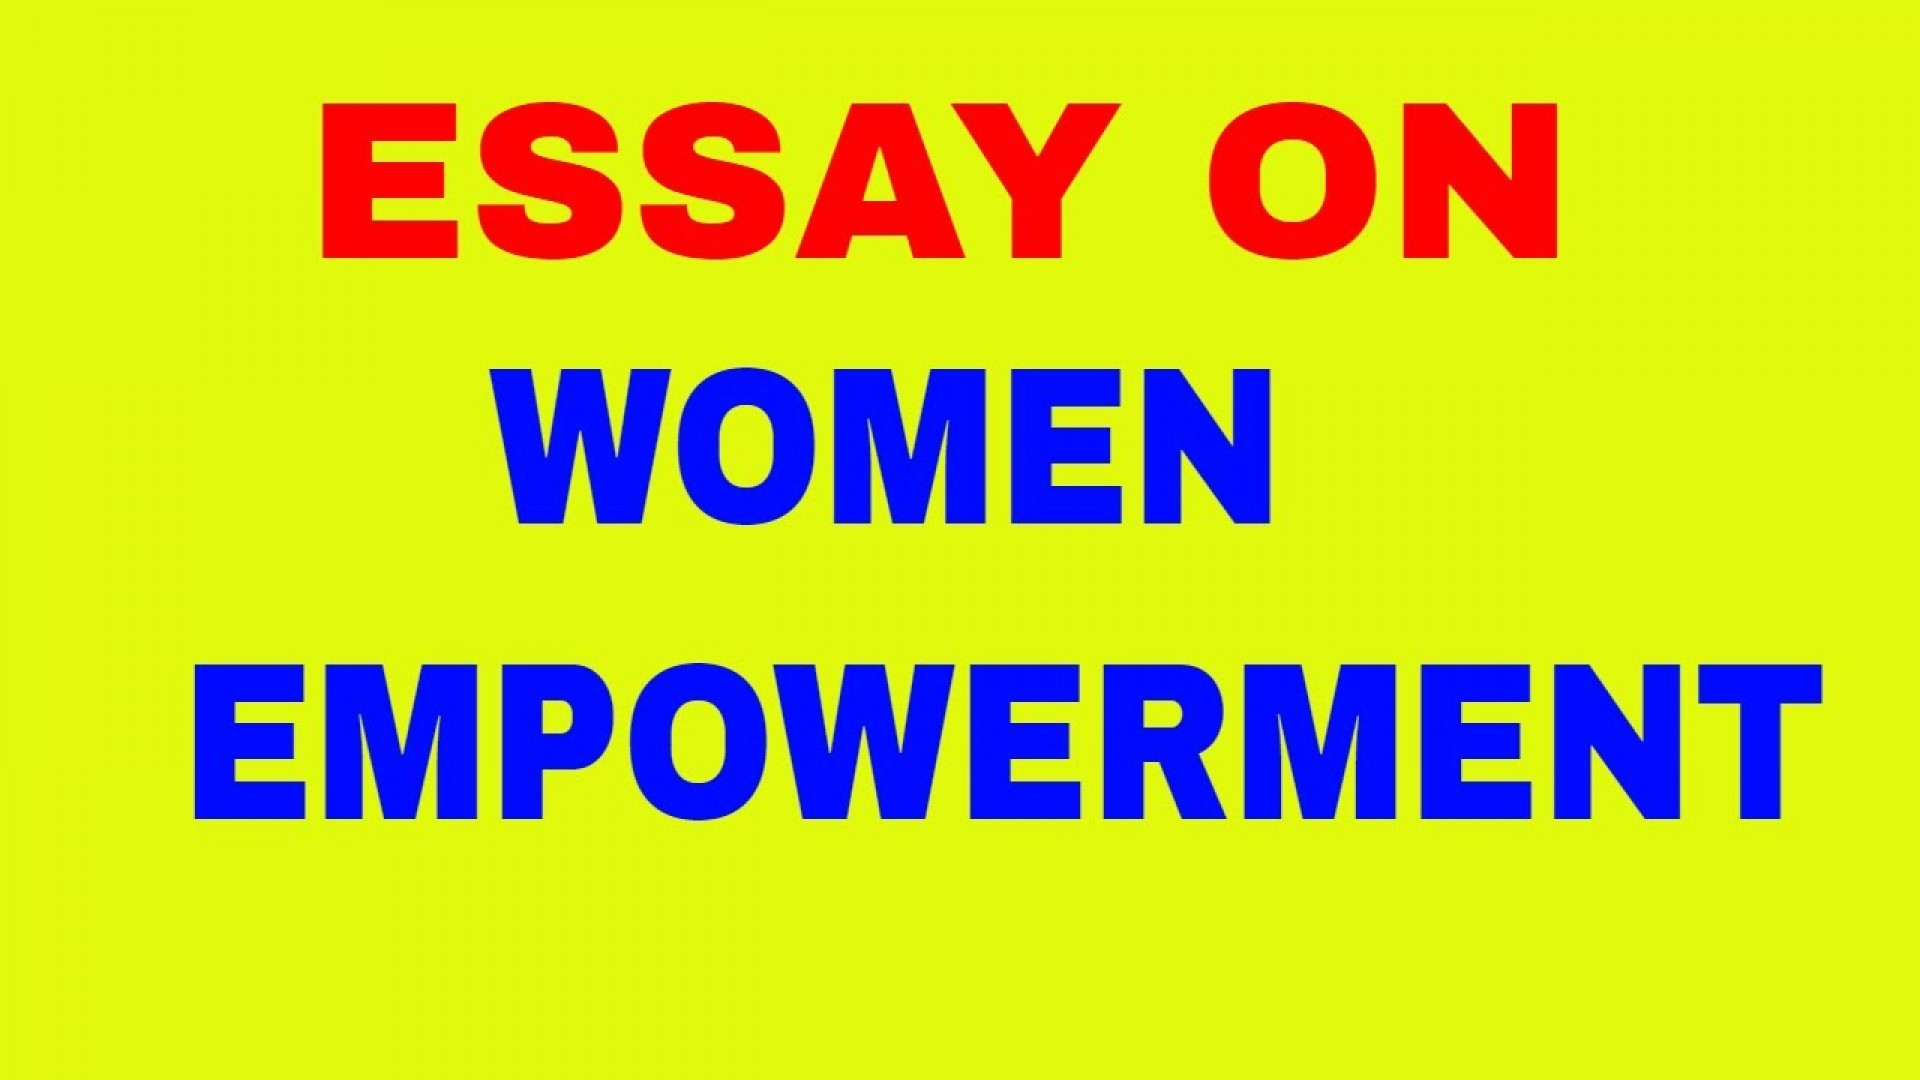 005 Maxresdefault Women Empowerment Essay Exceptional Pdf Gender Equality And Women's 1920